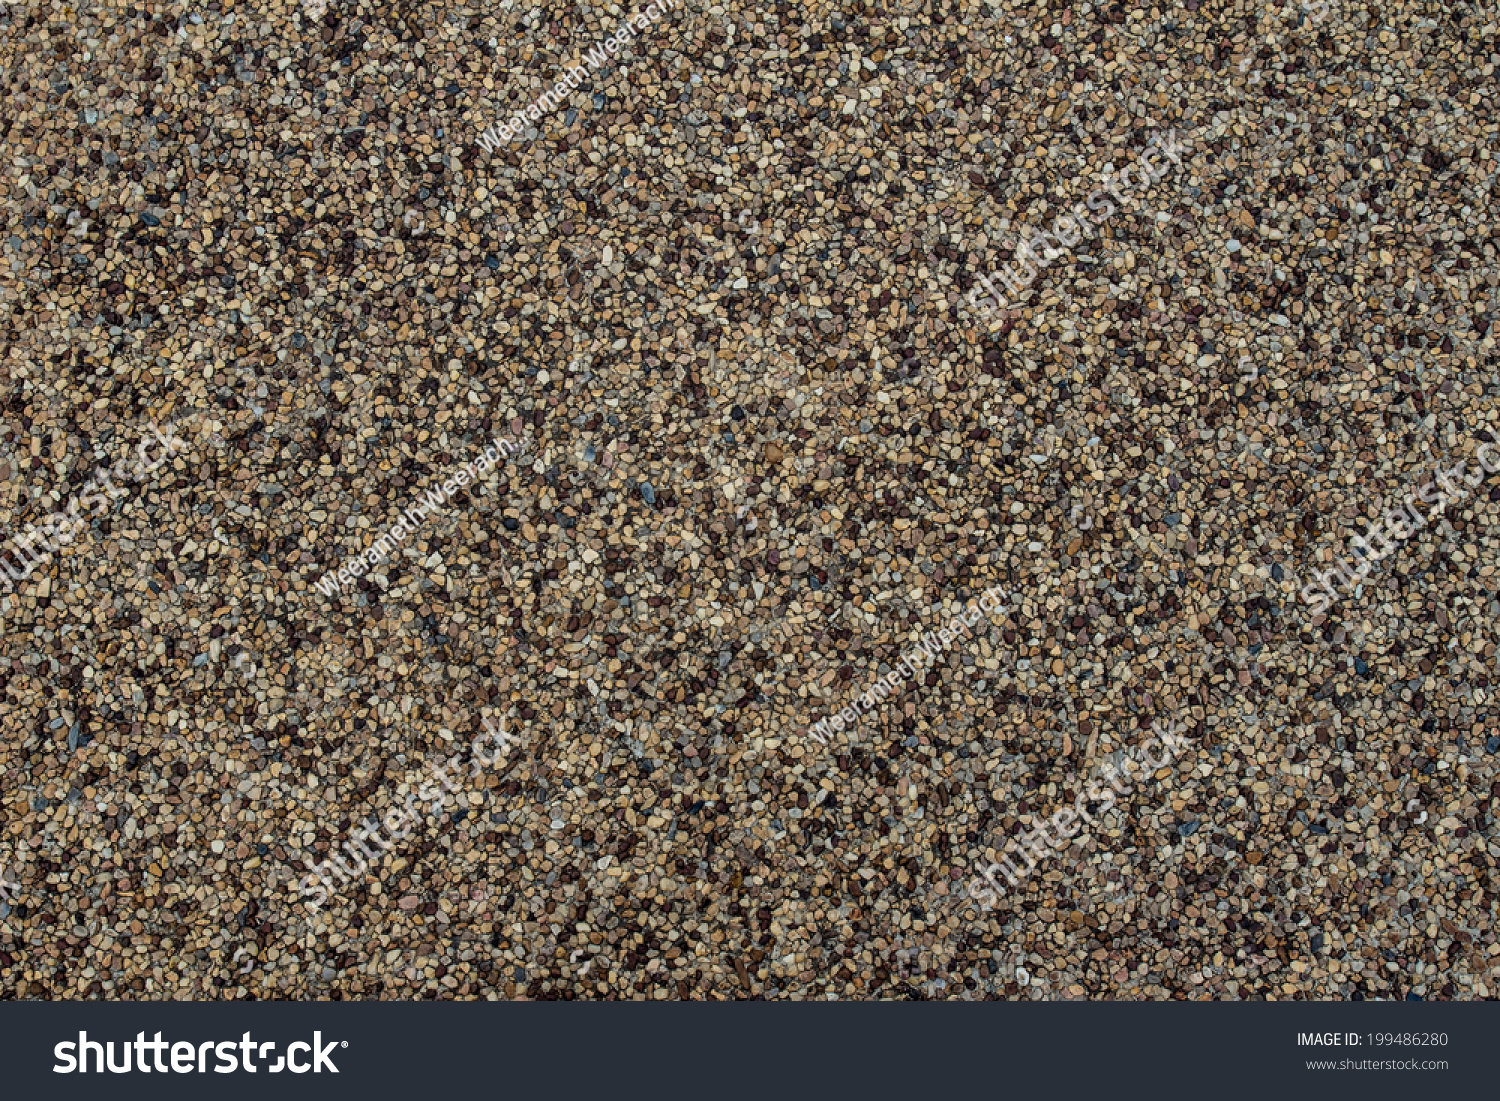 Dark Grey Pea Gravel